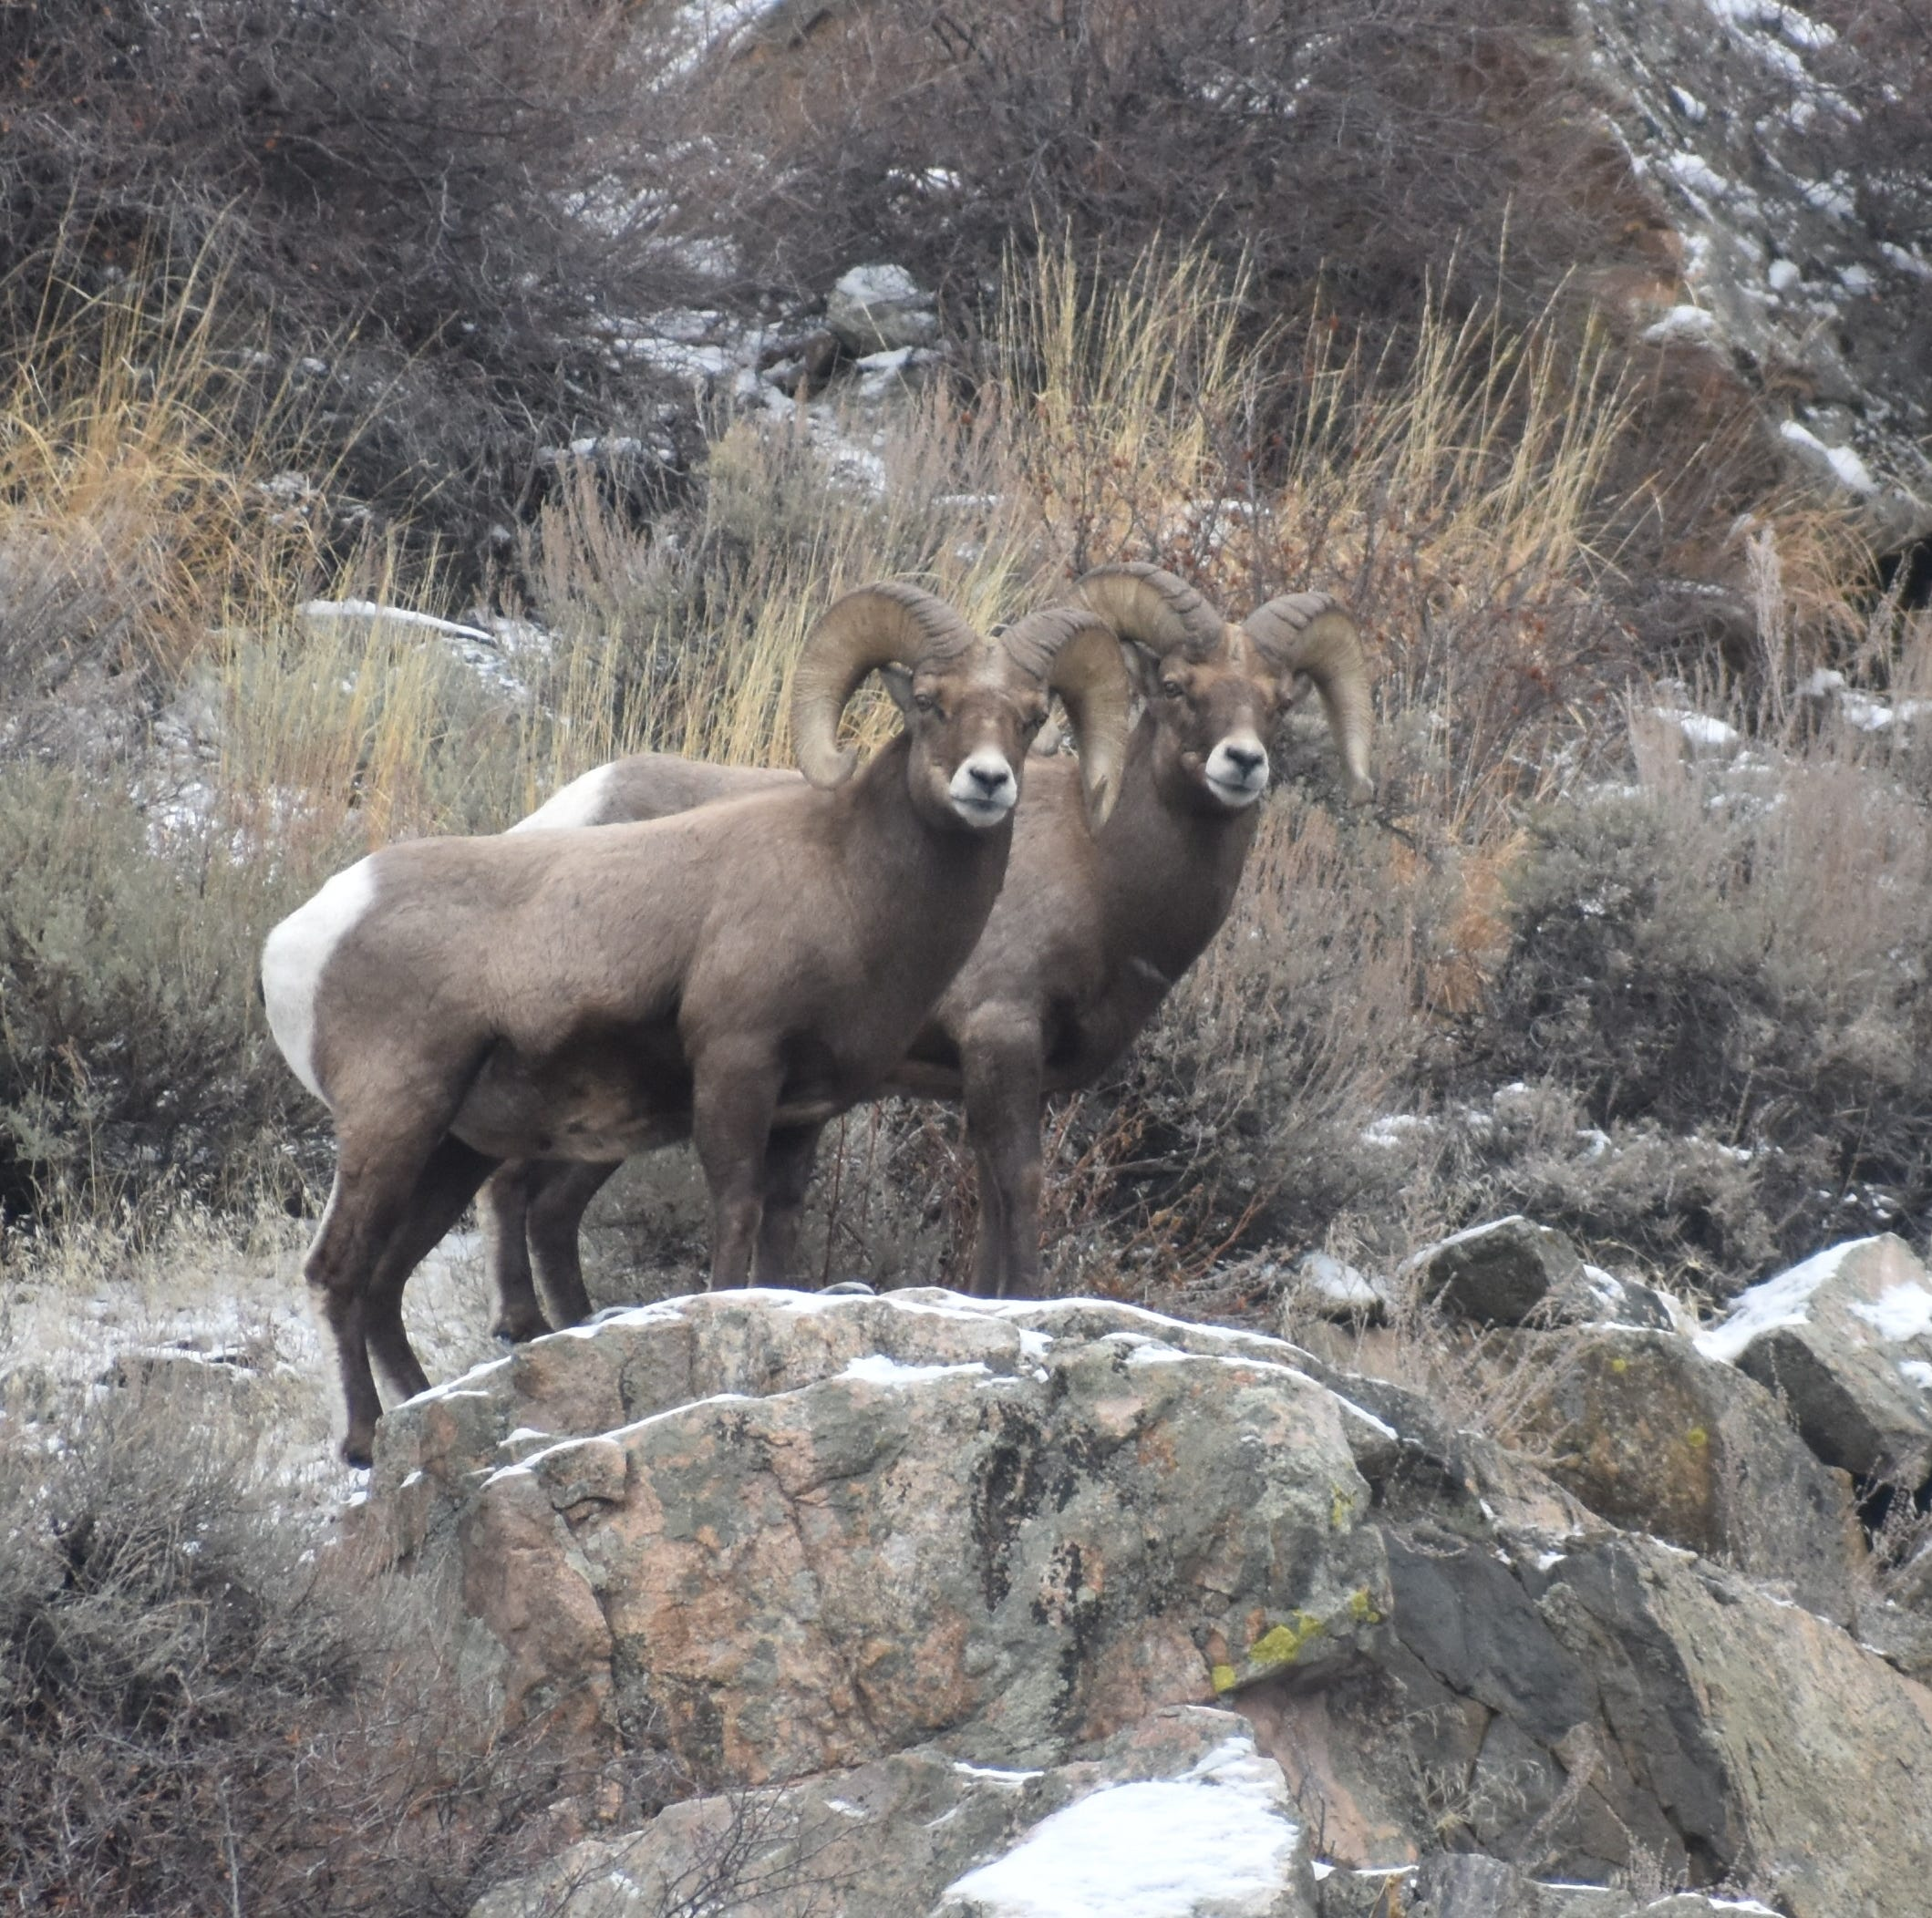 Here's everything you need to know to find bighorn sheep in Northern Colorado